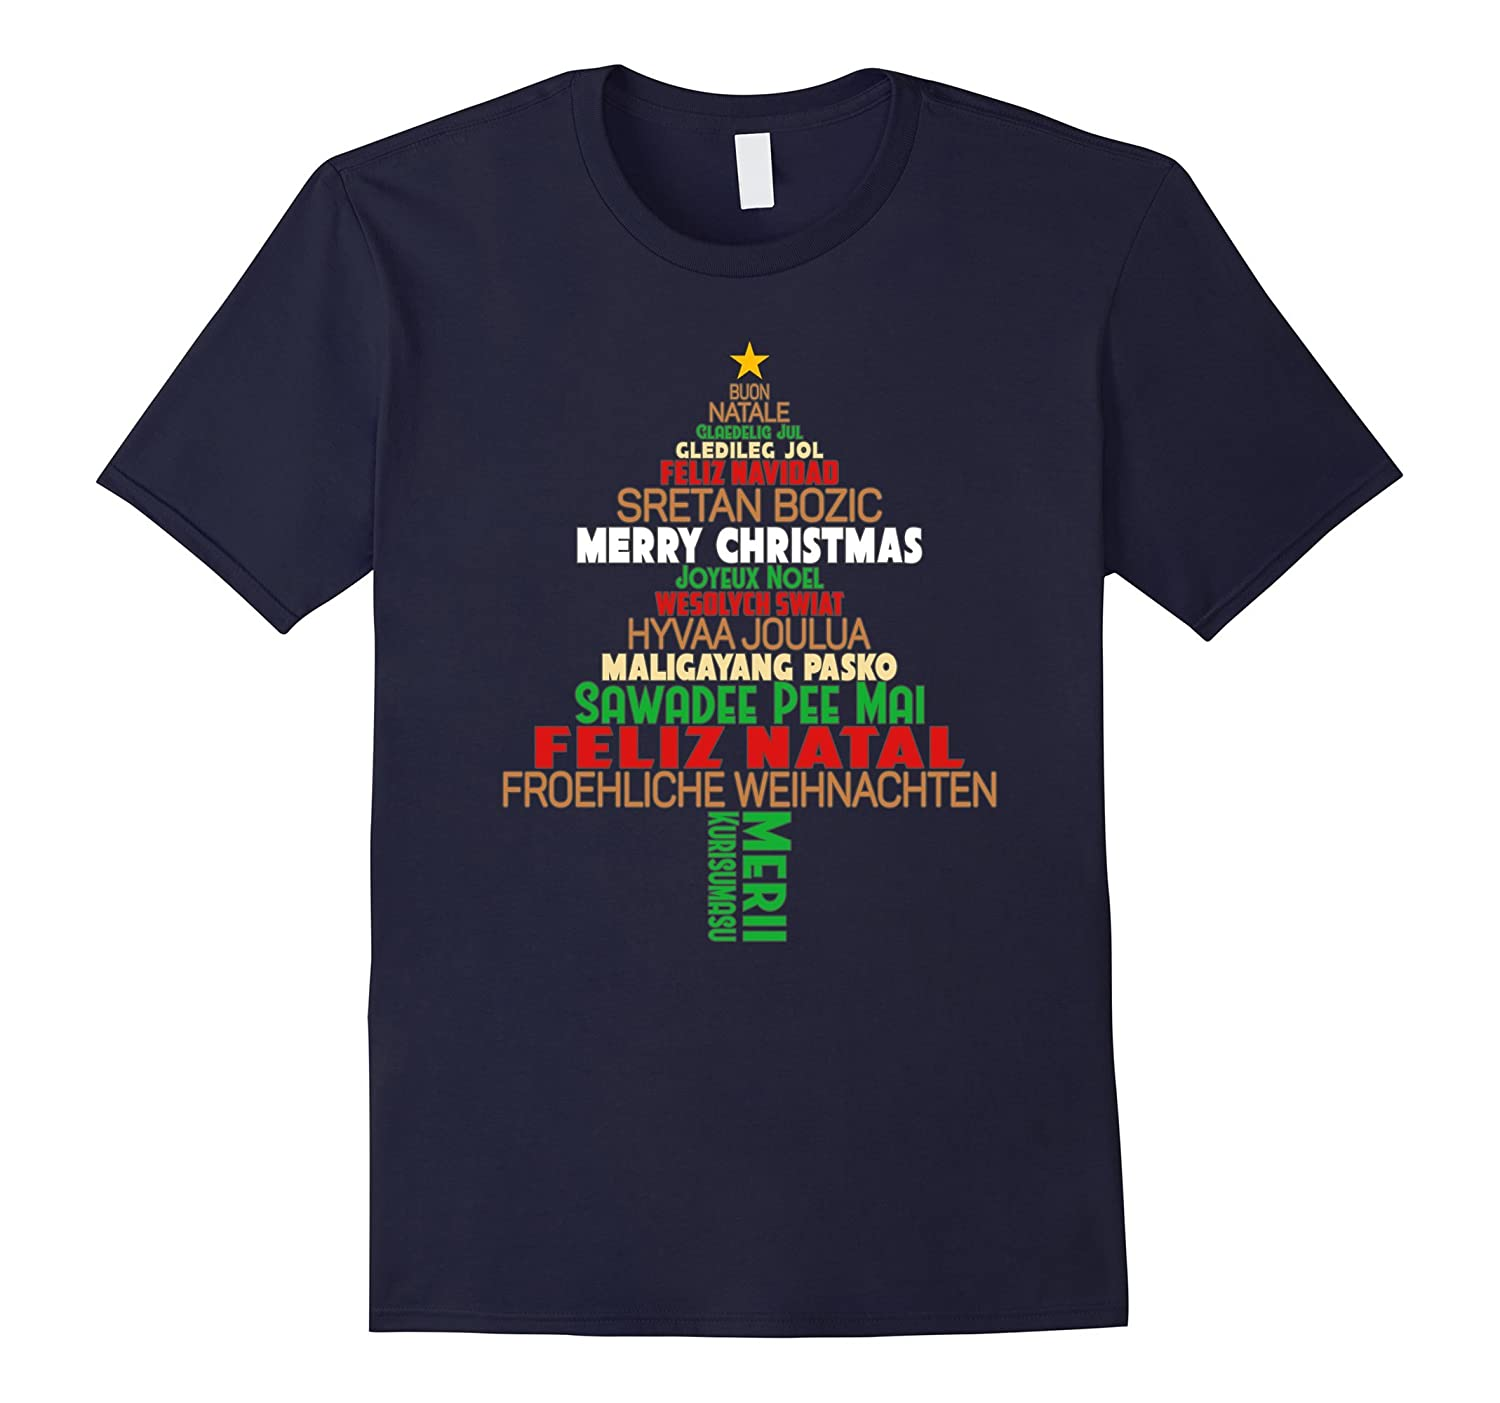 Merry Christmas Different Languages Tshirt Around The World-T-Shirt